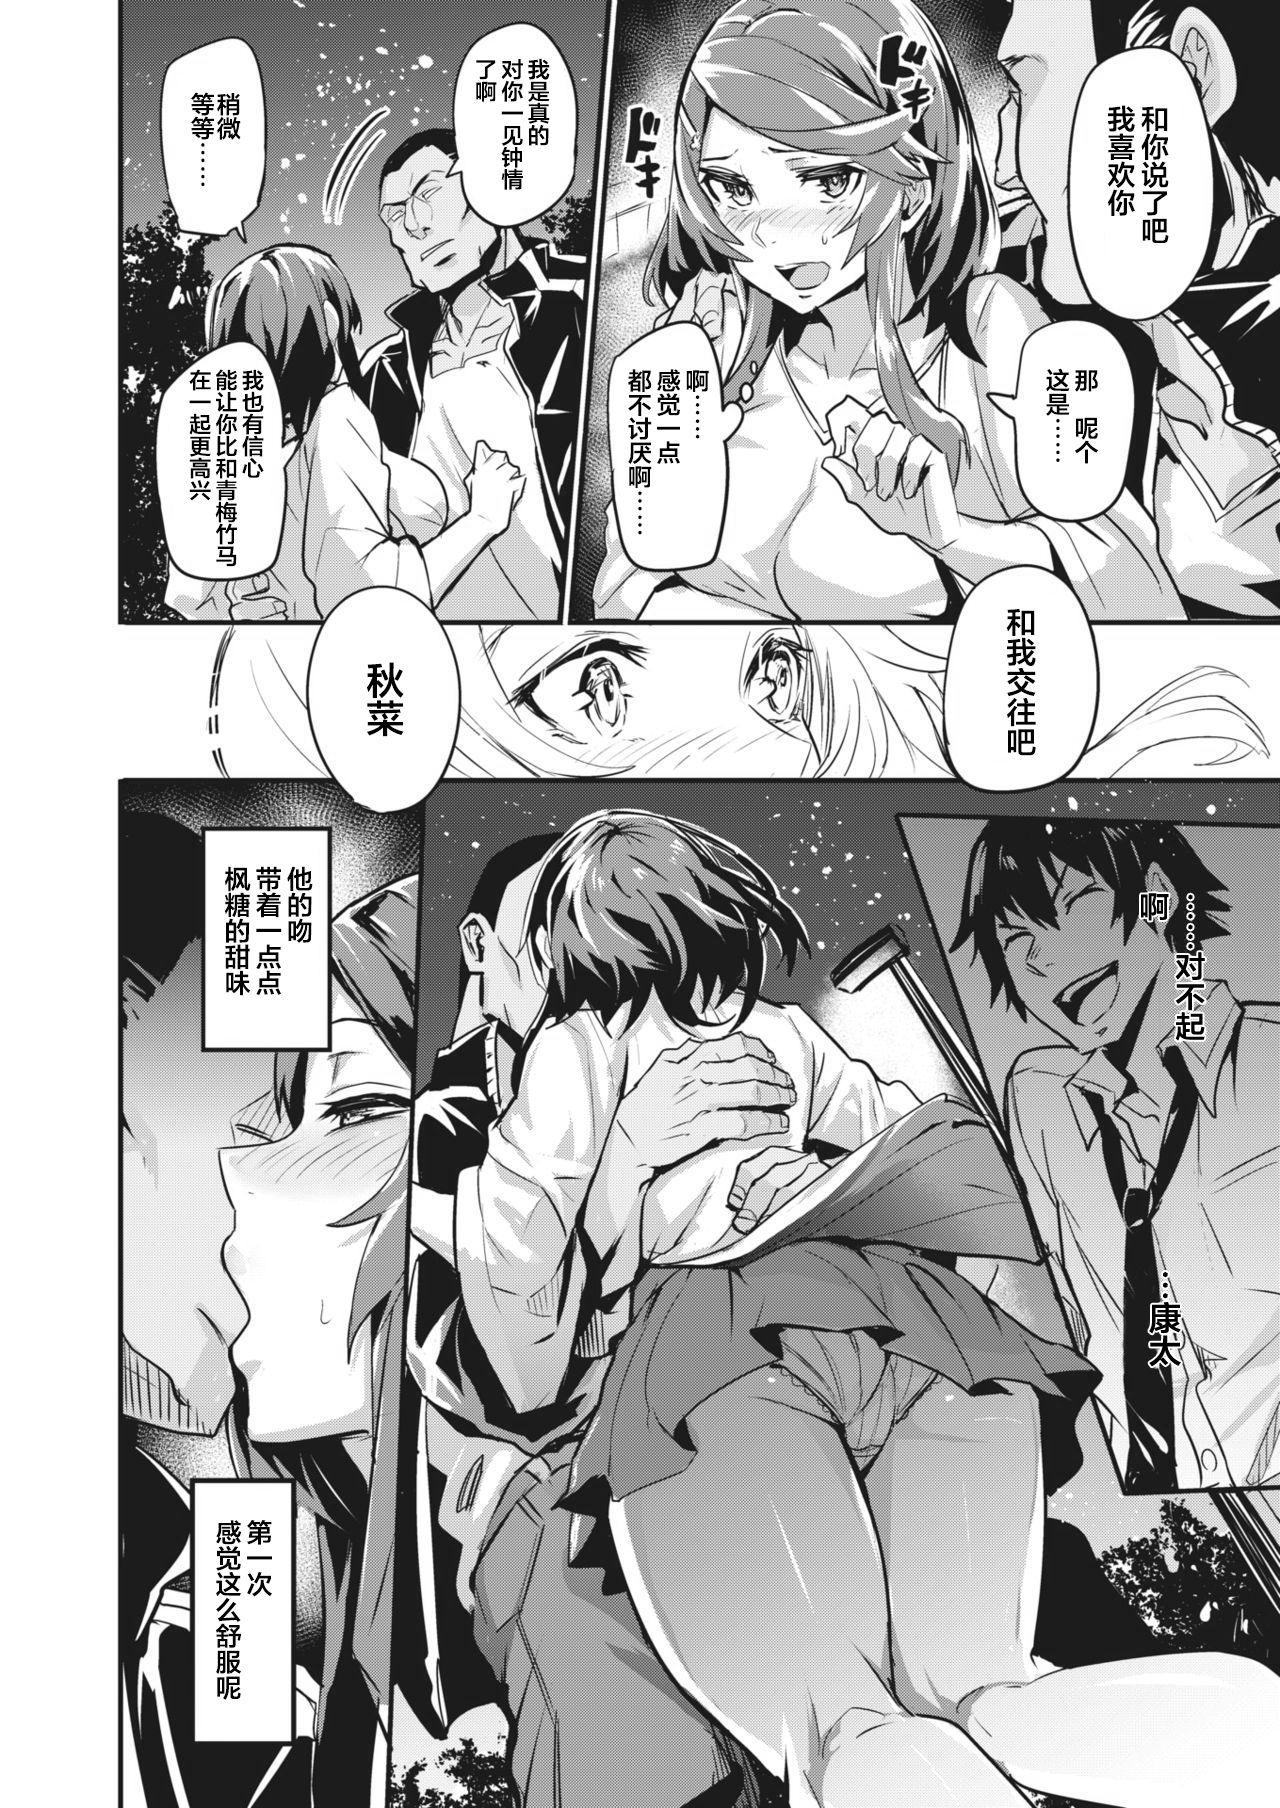 Hitorijime - first come first served Ch. 4 5